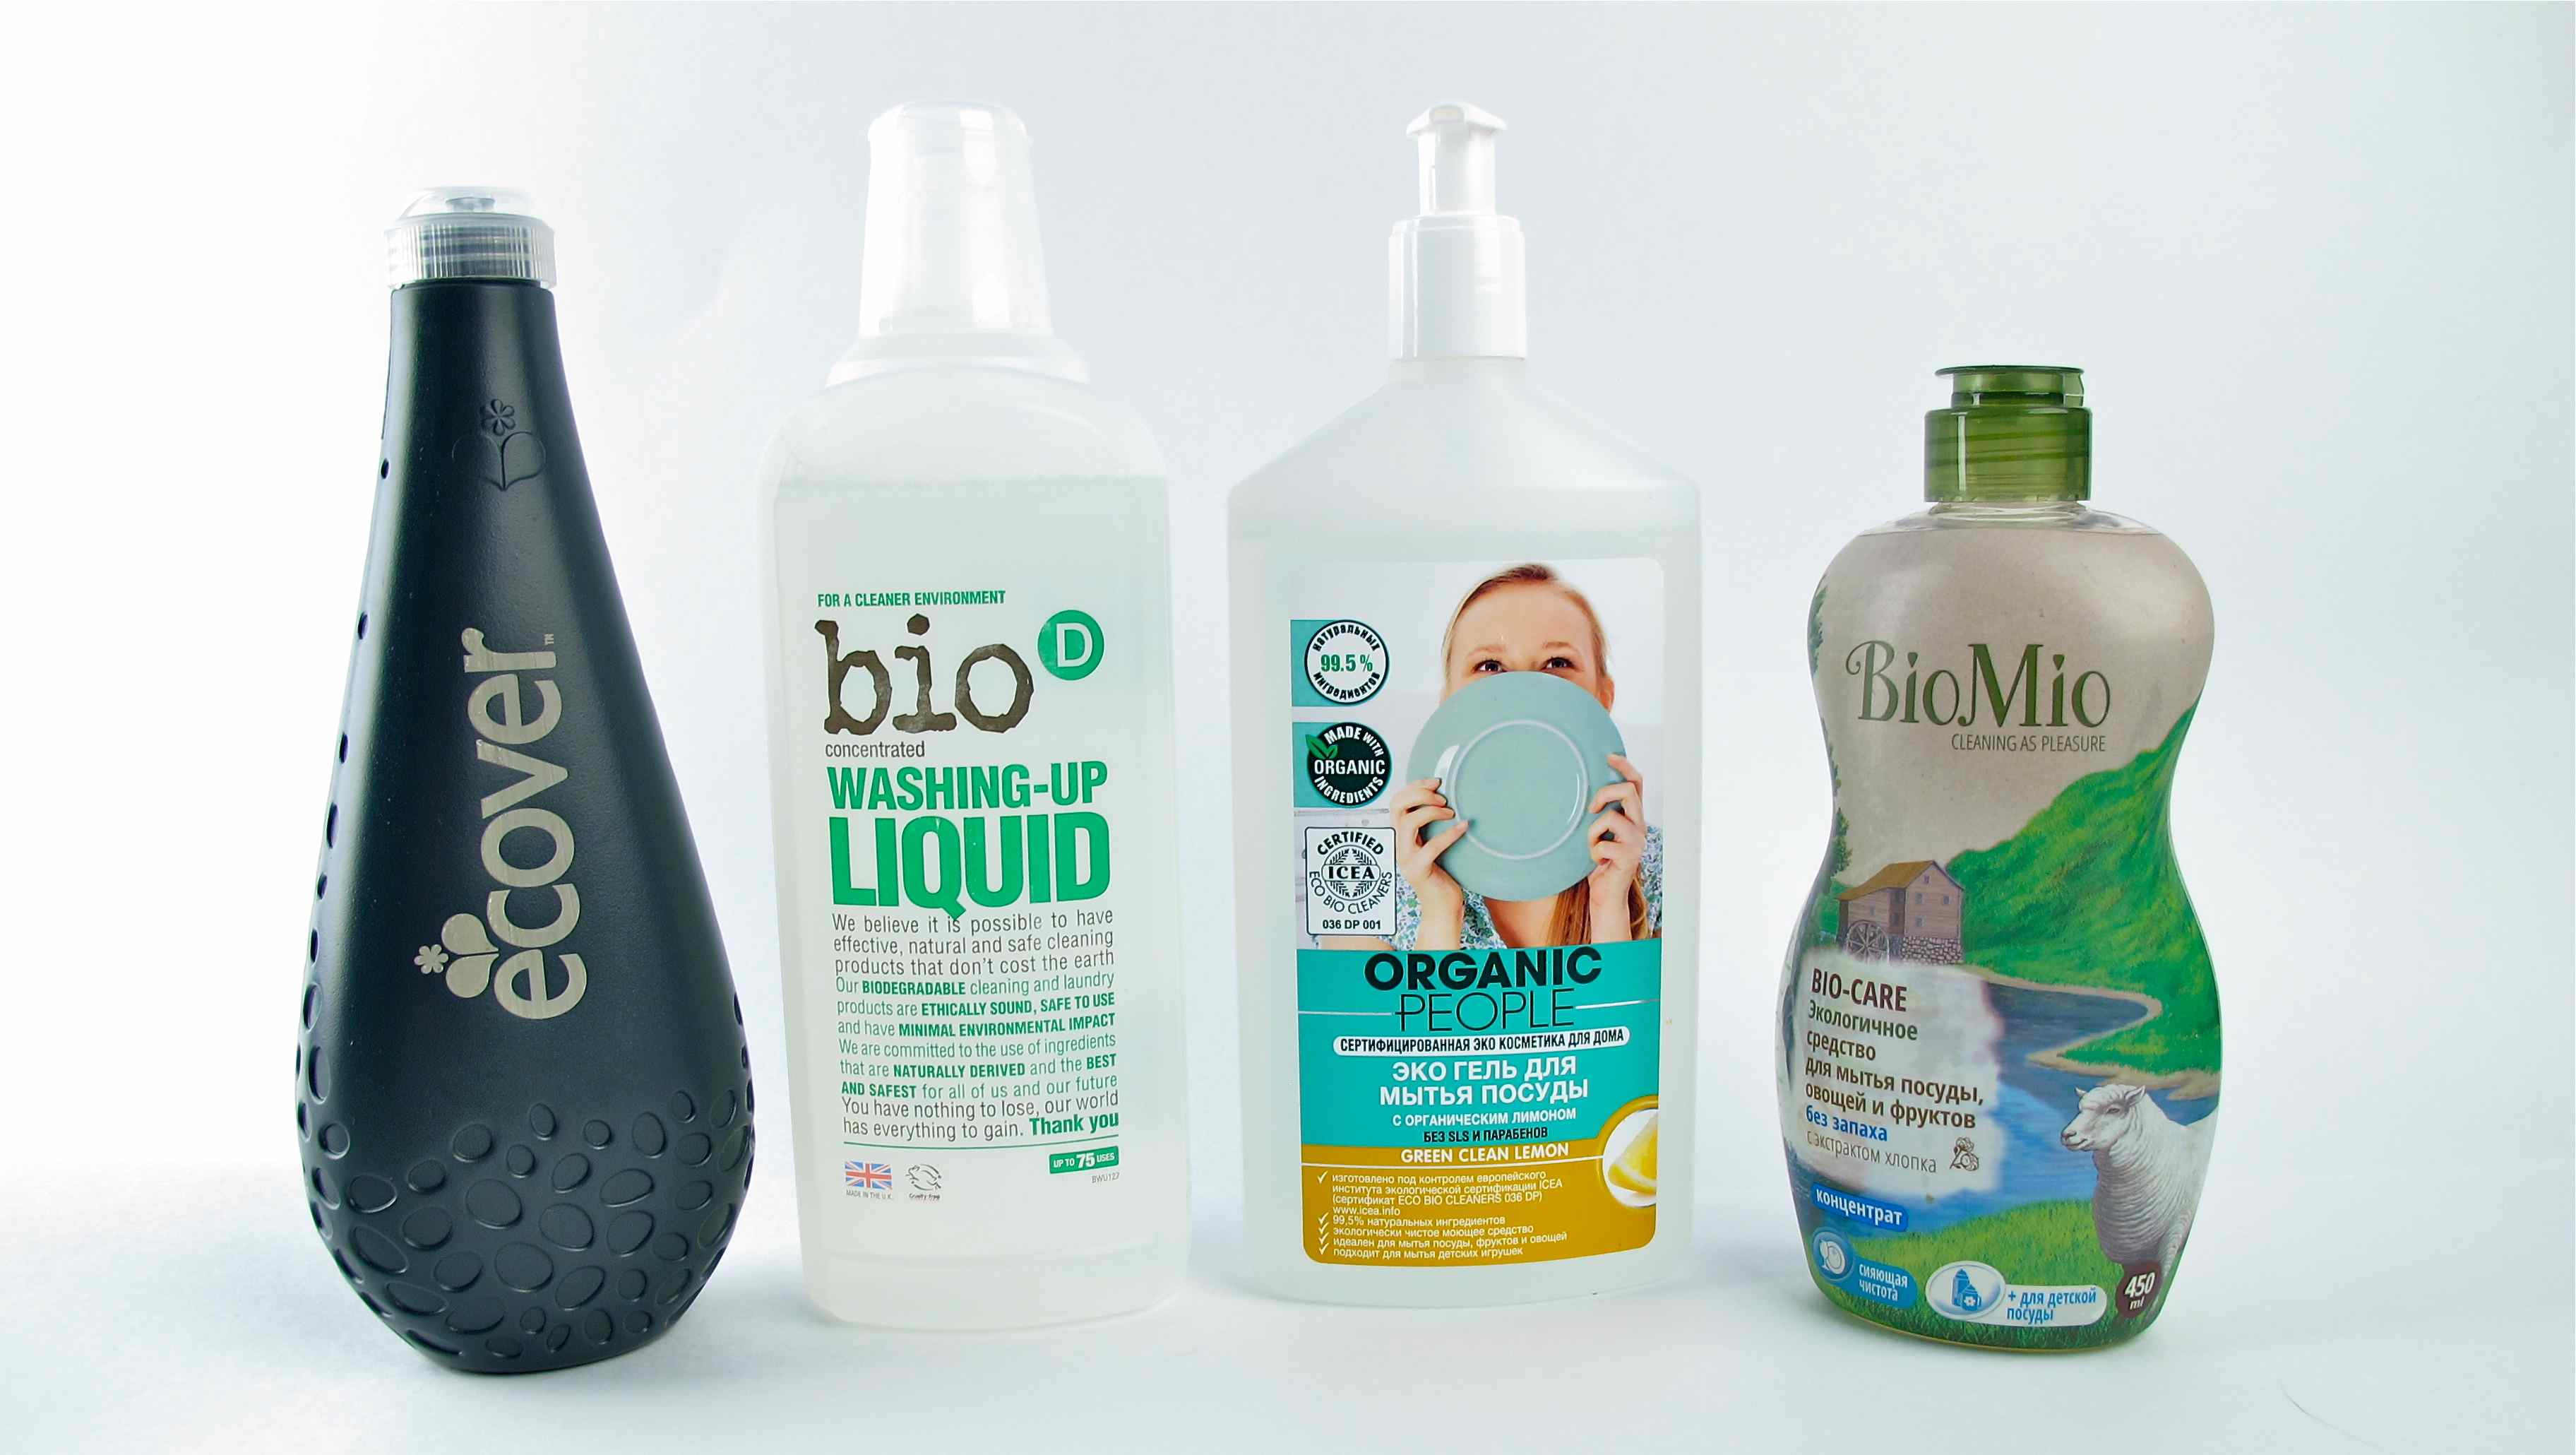 All dish washing liquids Ecover Bio D Organic People Bio Mio